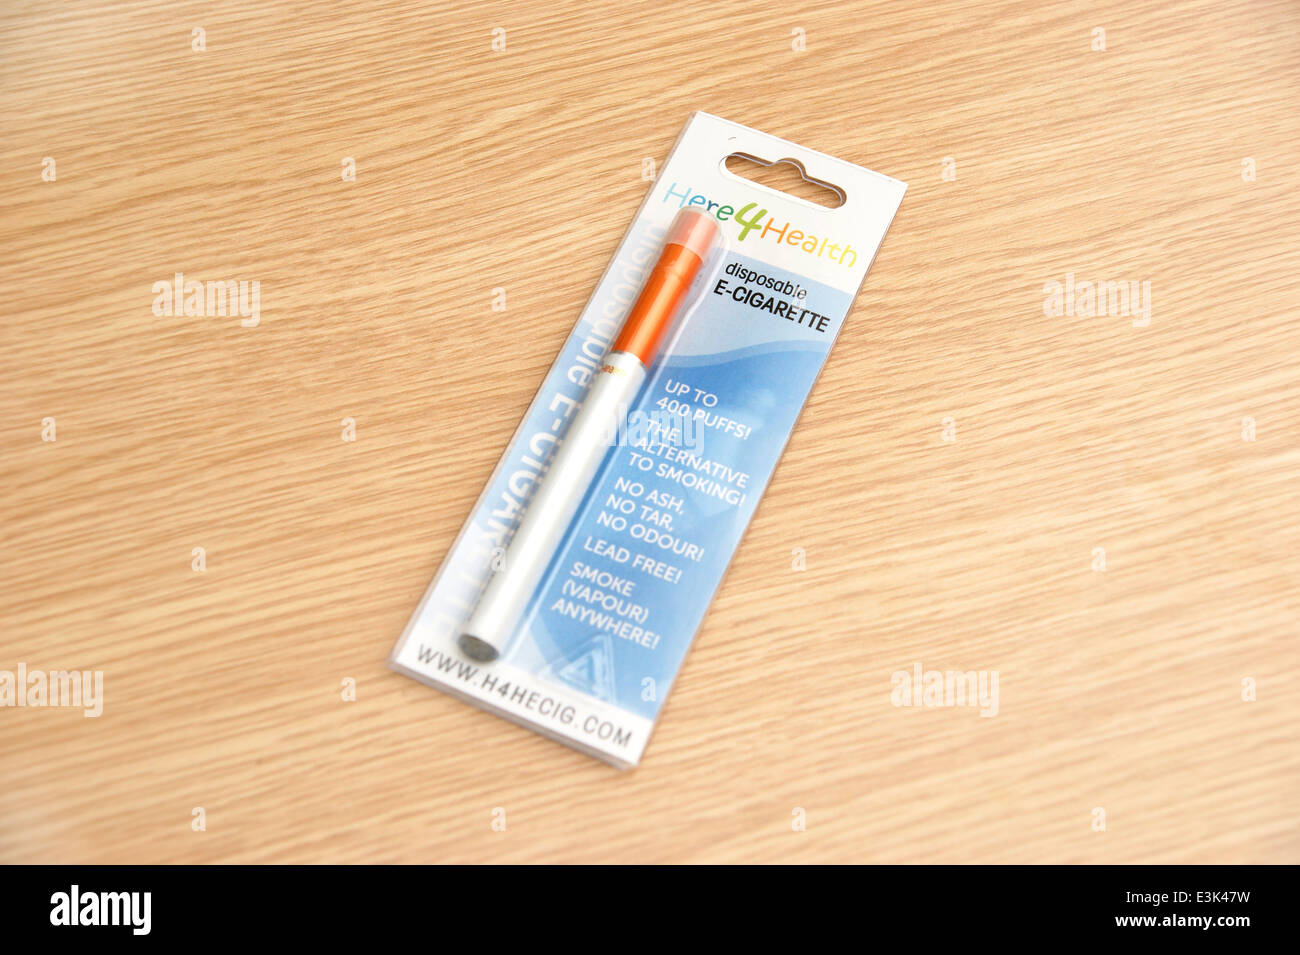 An electronic disposable E Cigarette (e-cigarette) in original packaging used for quitting smoking - Stock Image